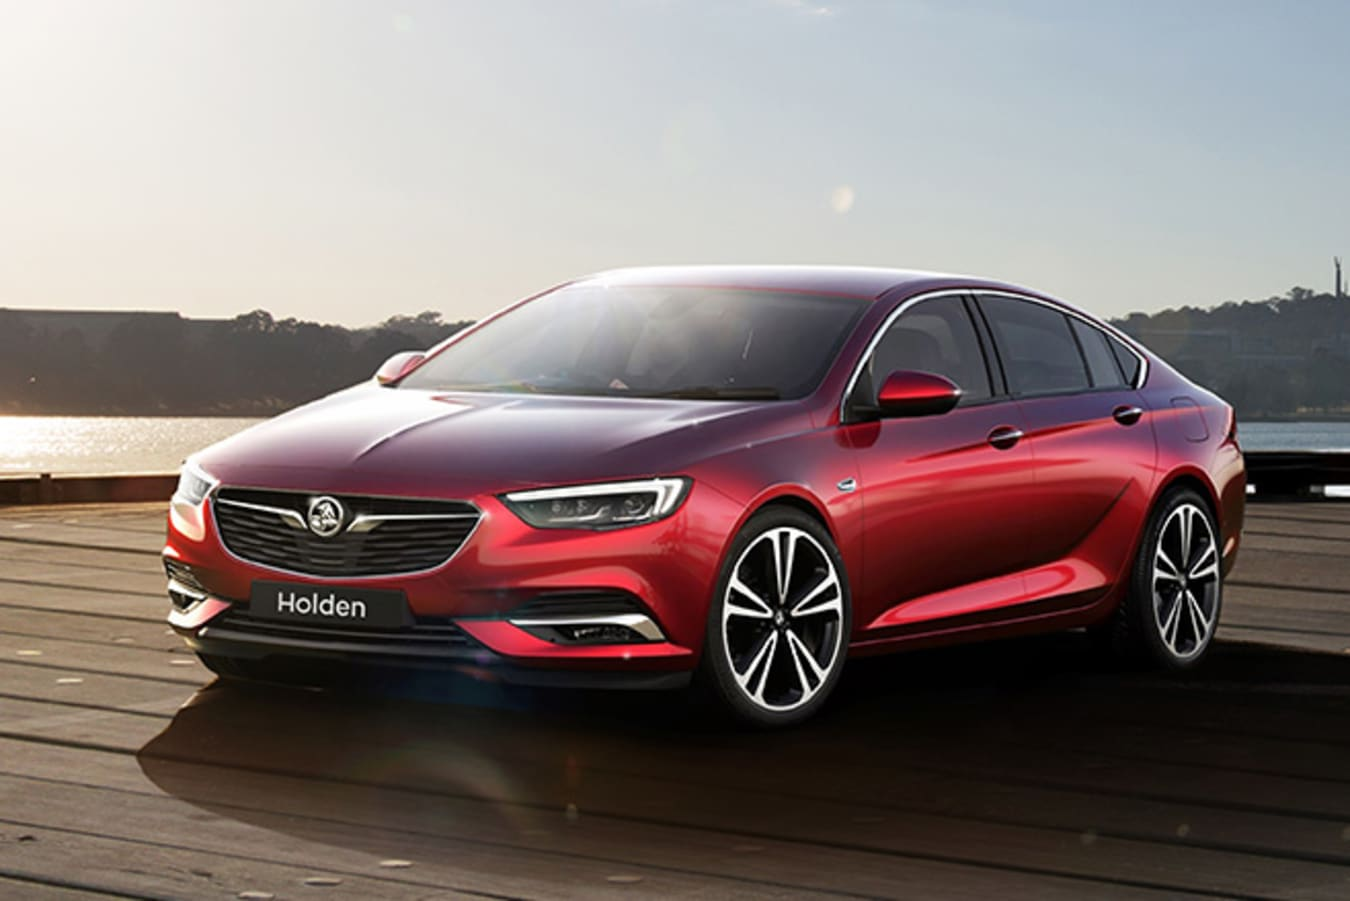 2018 Holden Commodore revealed